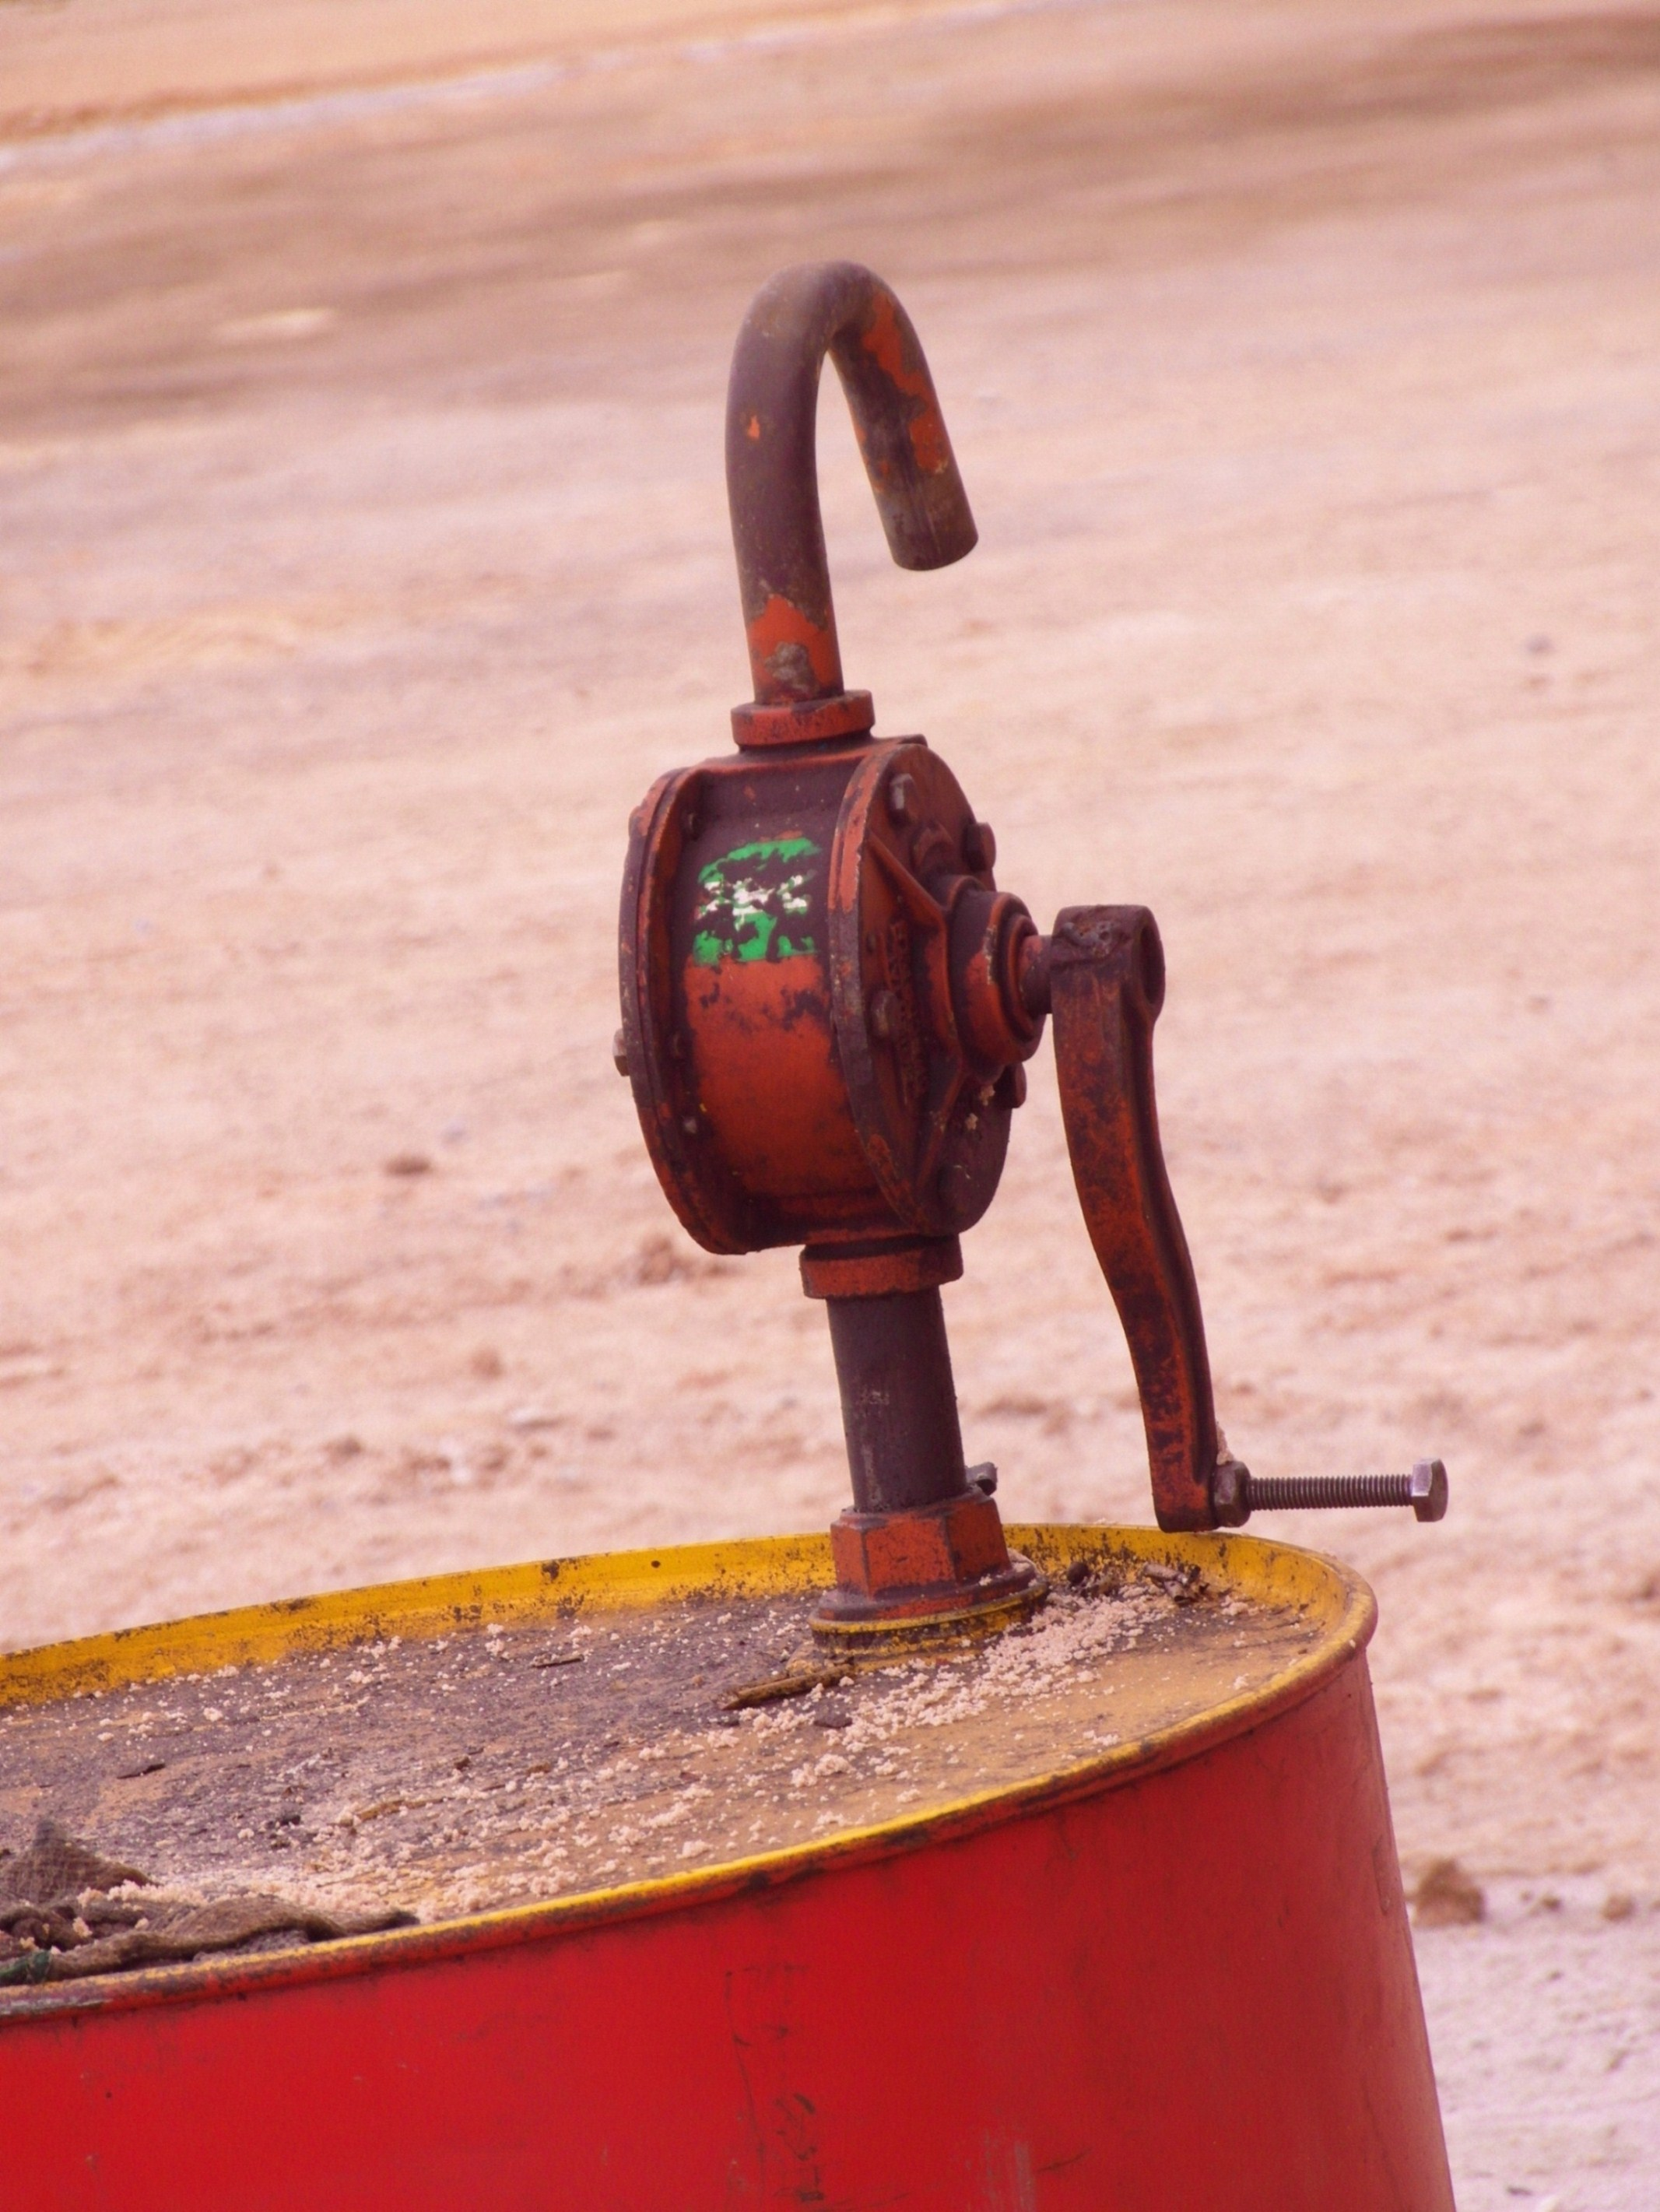 Oil drum with pump photo